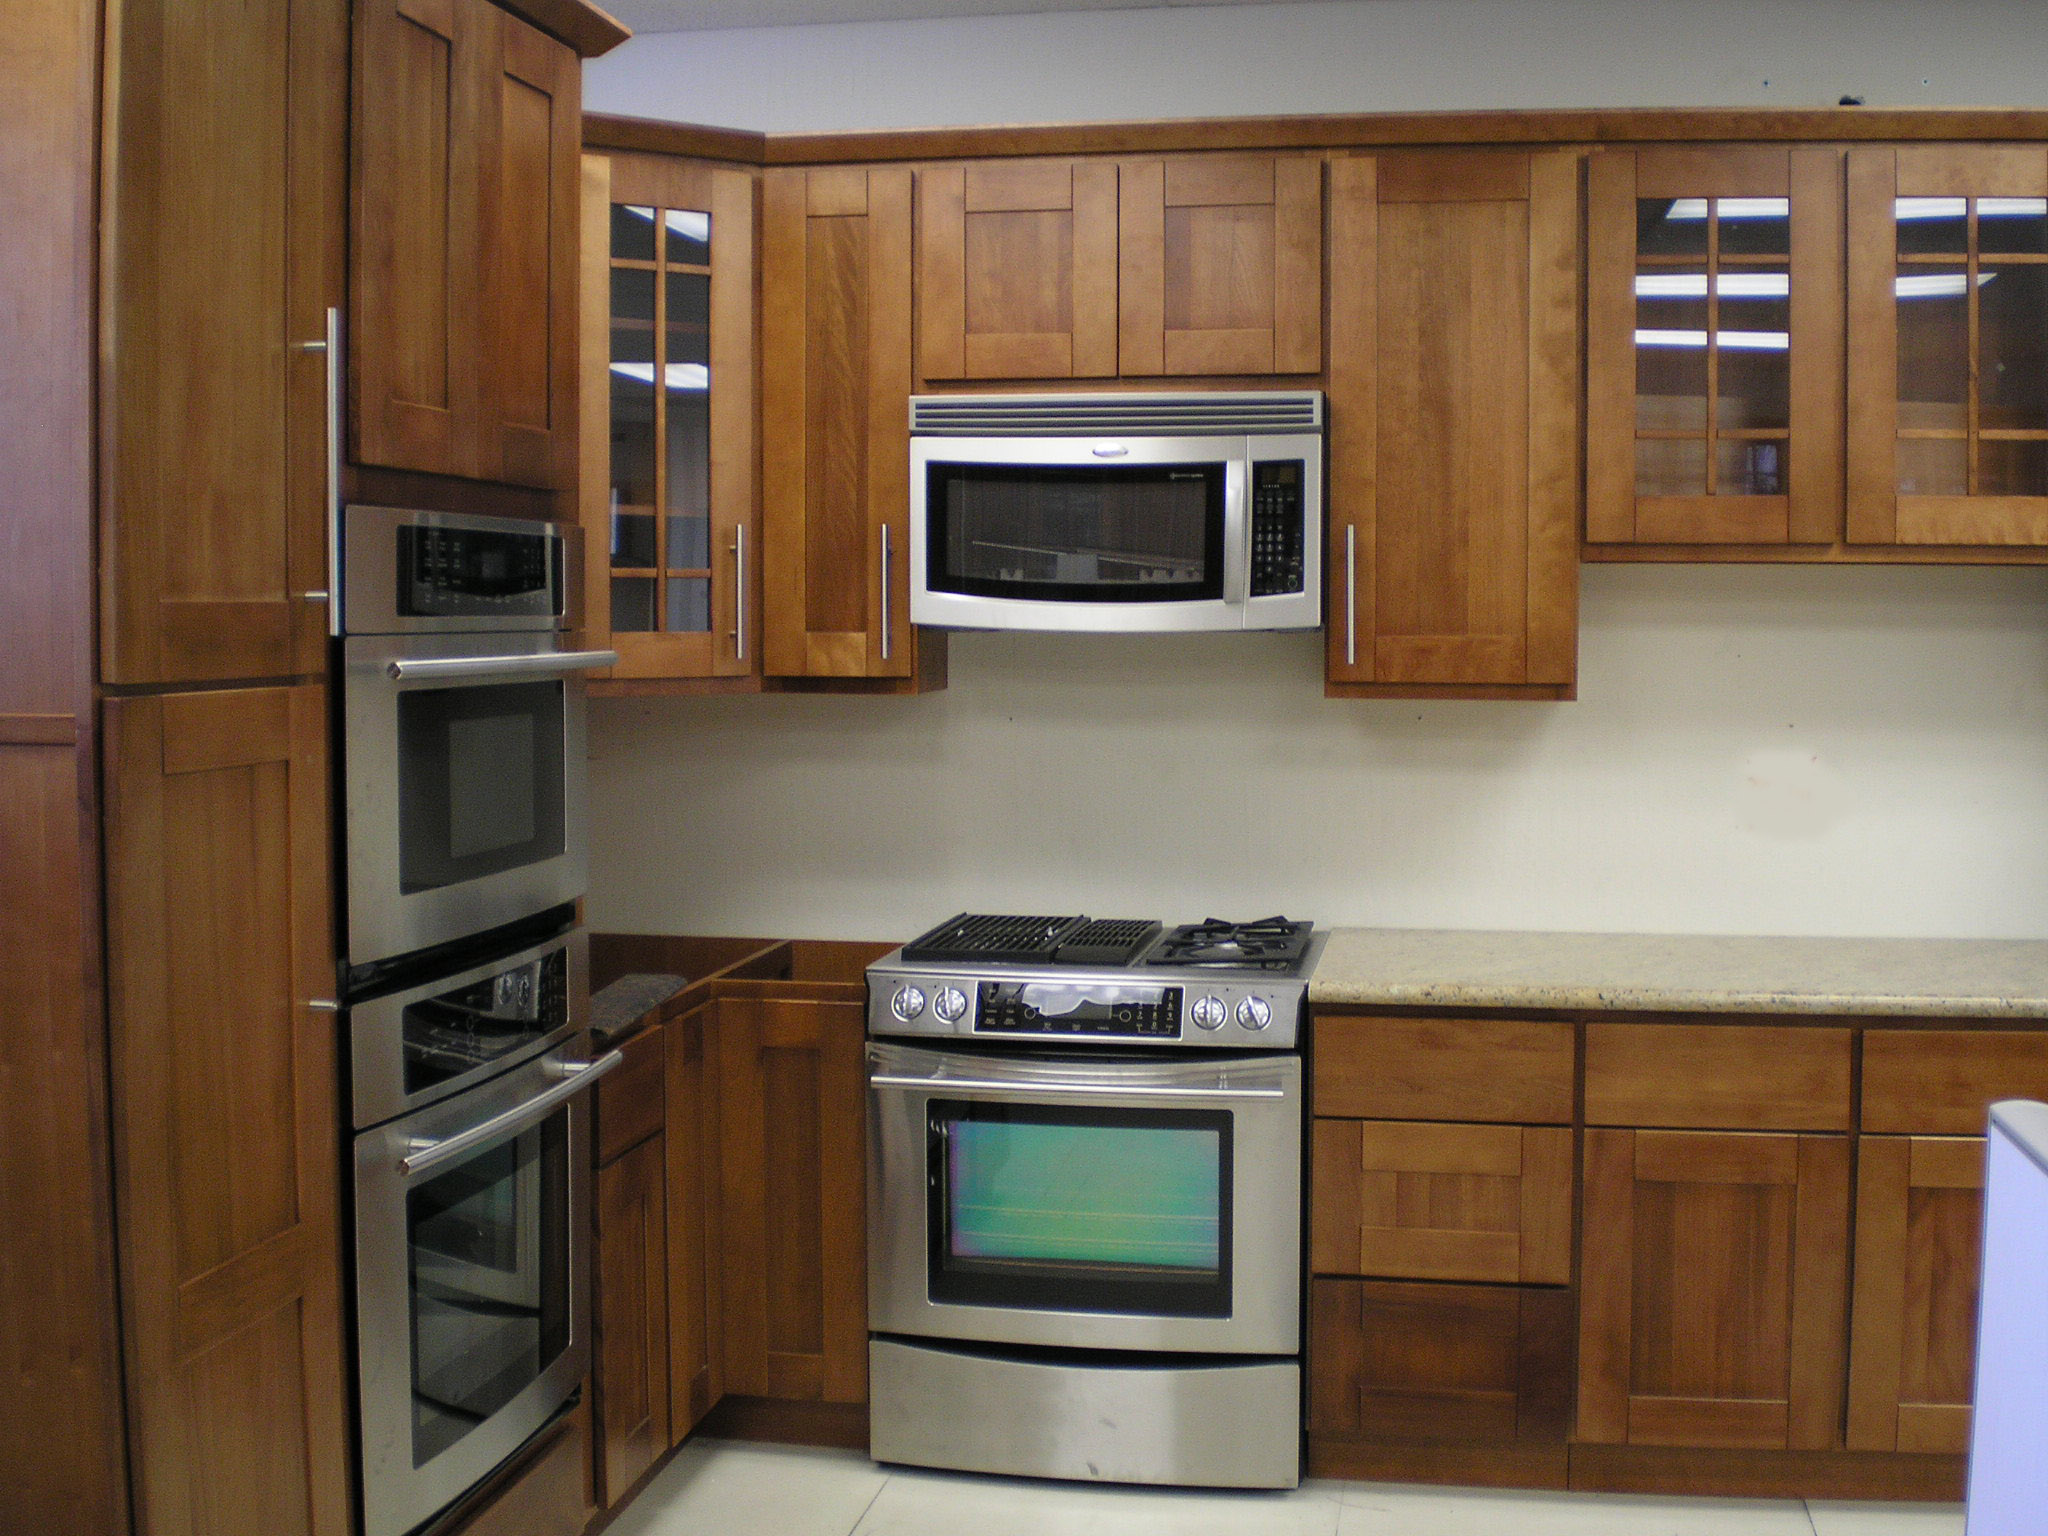 Kitchen Cabinets | 2048 x 1536 · 665 kB · jpeg | 2048 x 1536 · 665 kB · jpeg